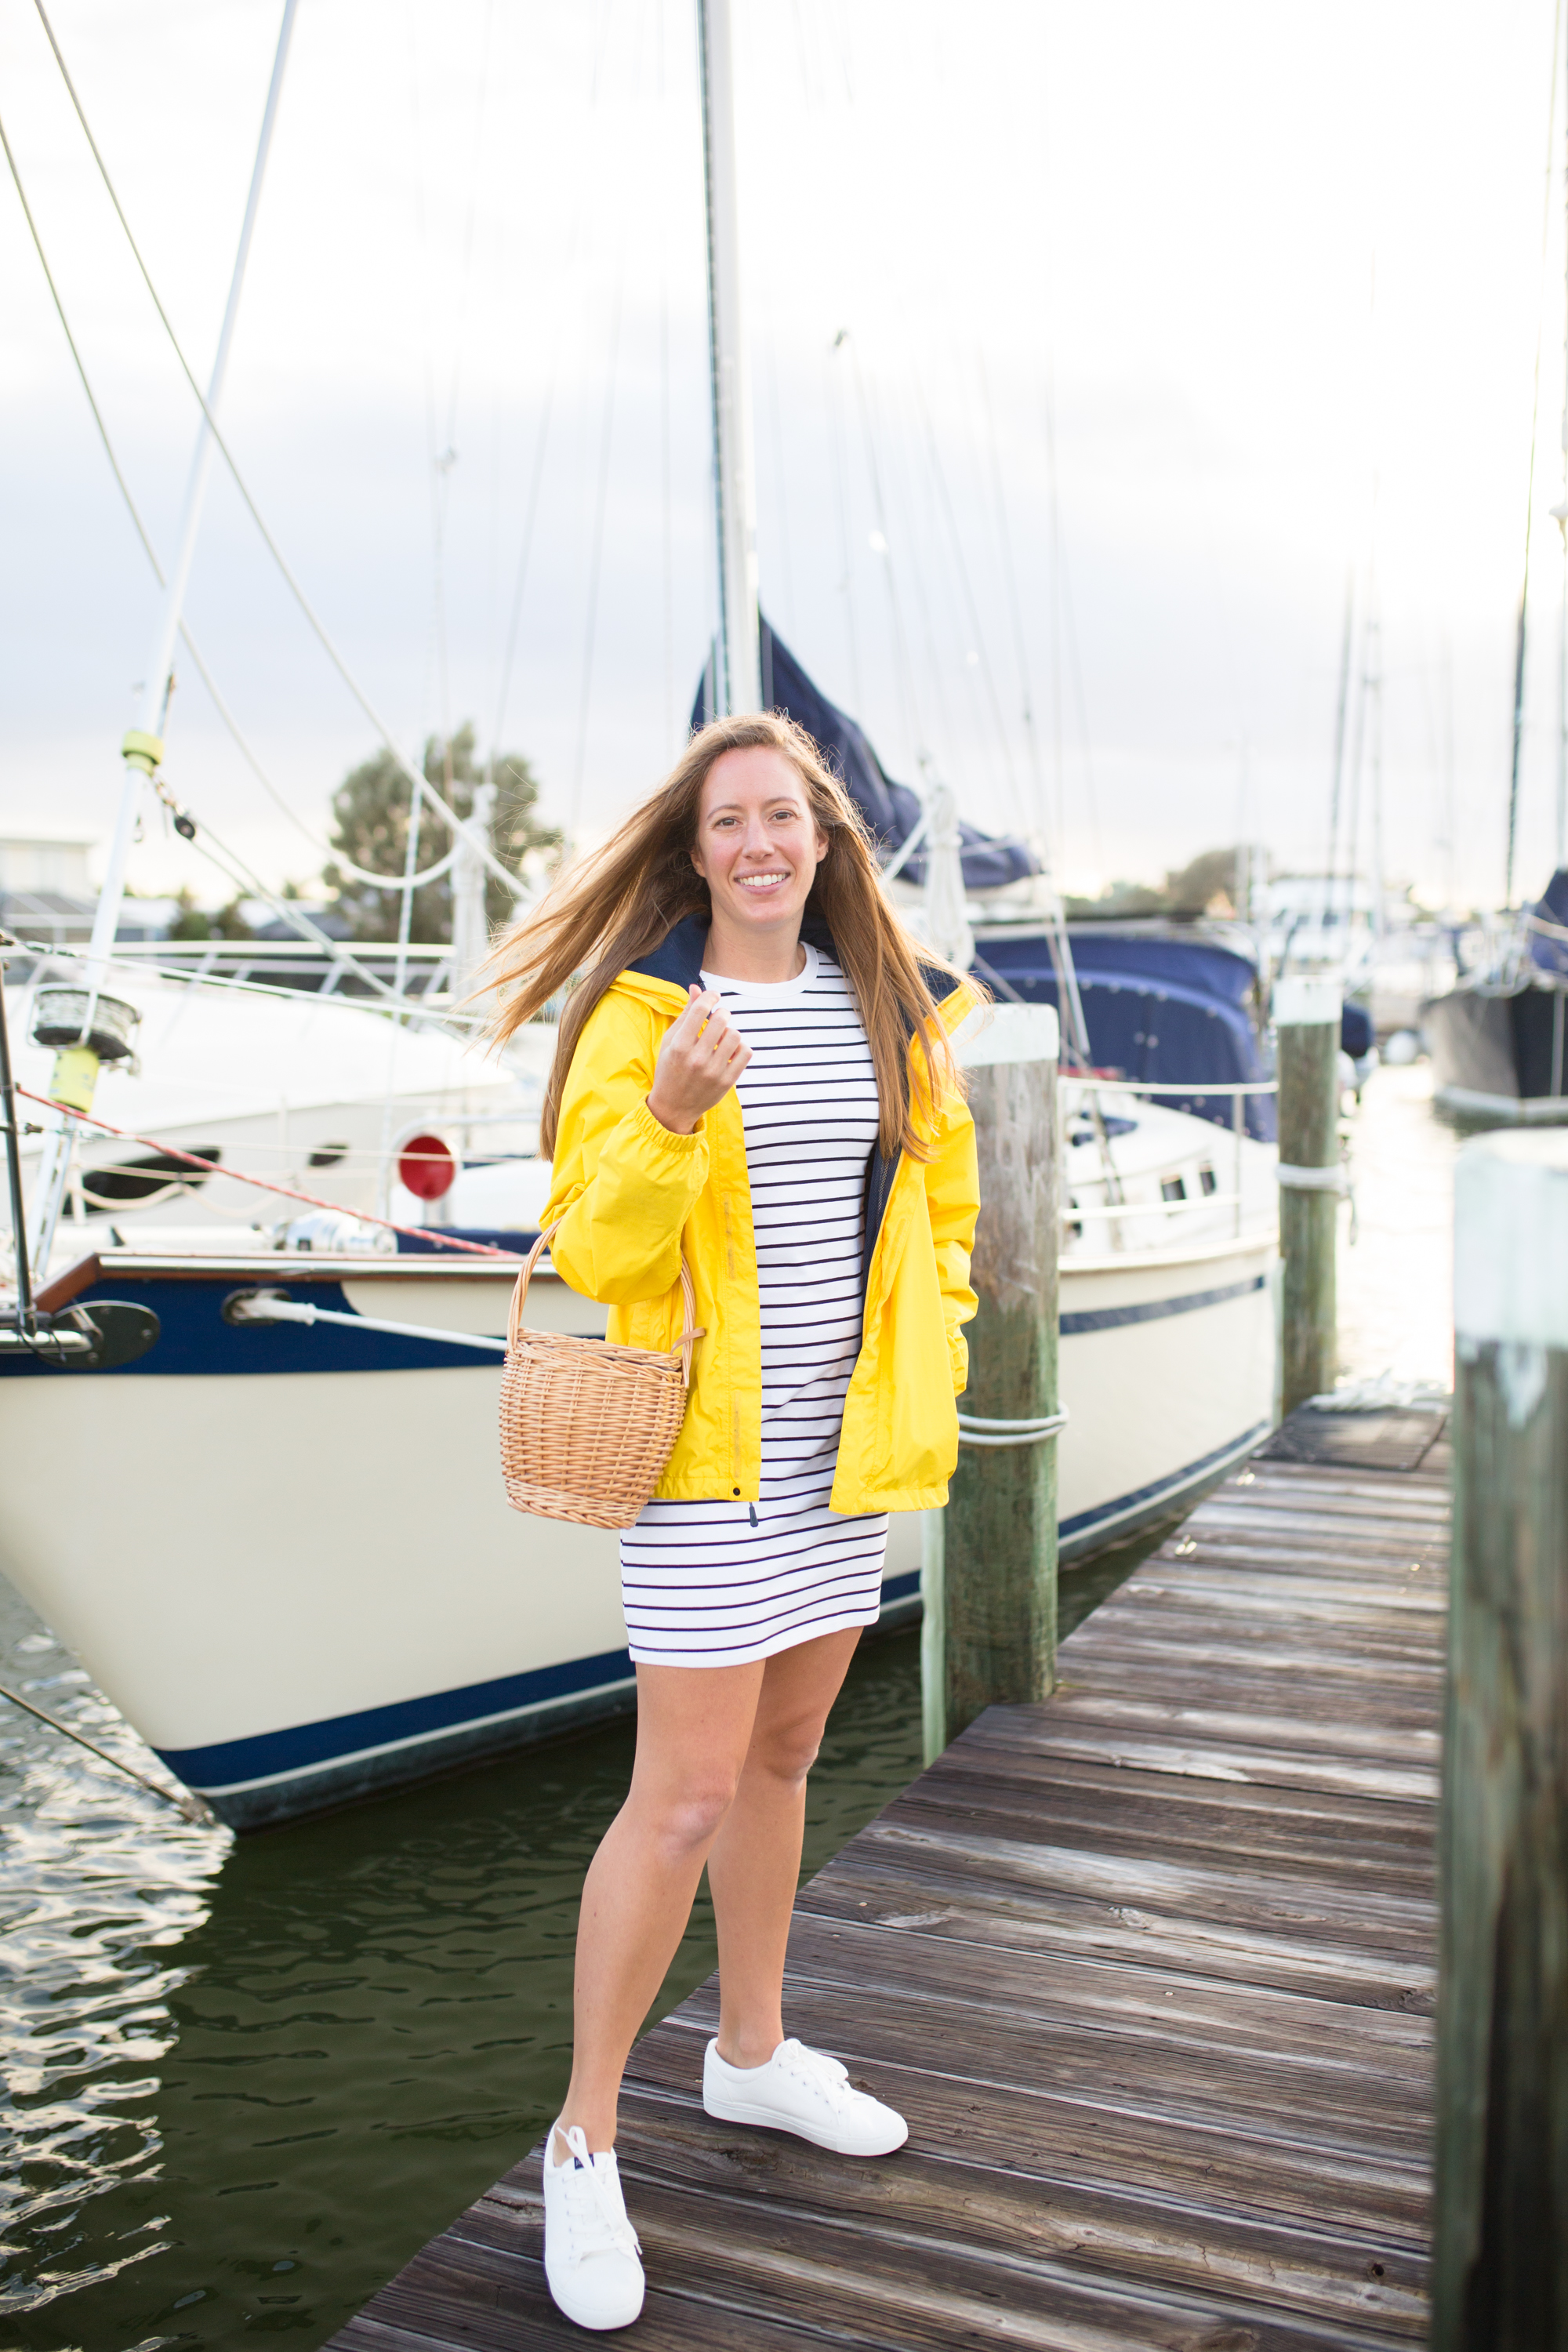 How to Style a Long Sleeve Striped Dress / Striped Dress Outfit / Blue Stripes / Yellow Raincoat / White Sneakers / Preppy Outfit / Coastal Outfit / Preppy Style Outfit / Cute Preppy Outfits / Nautical Outfit Women - Sunshine Style, A Florida Fashion and Lifestyle Blog